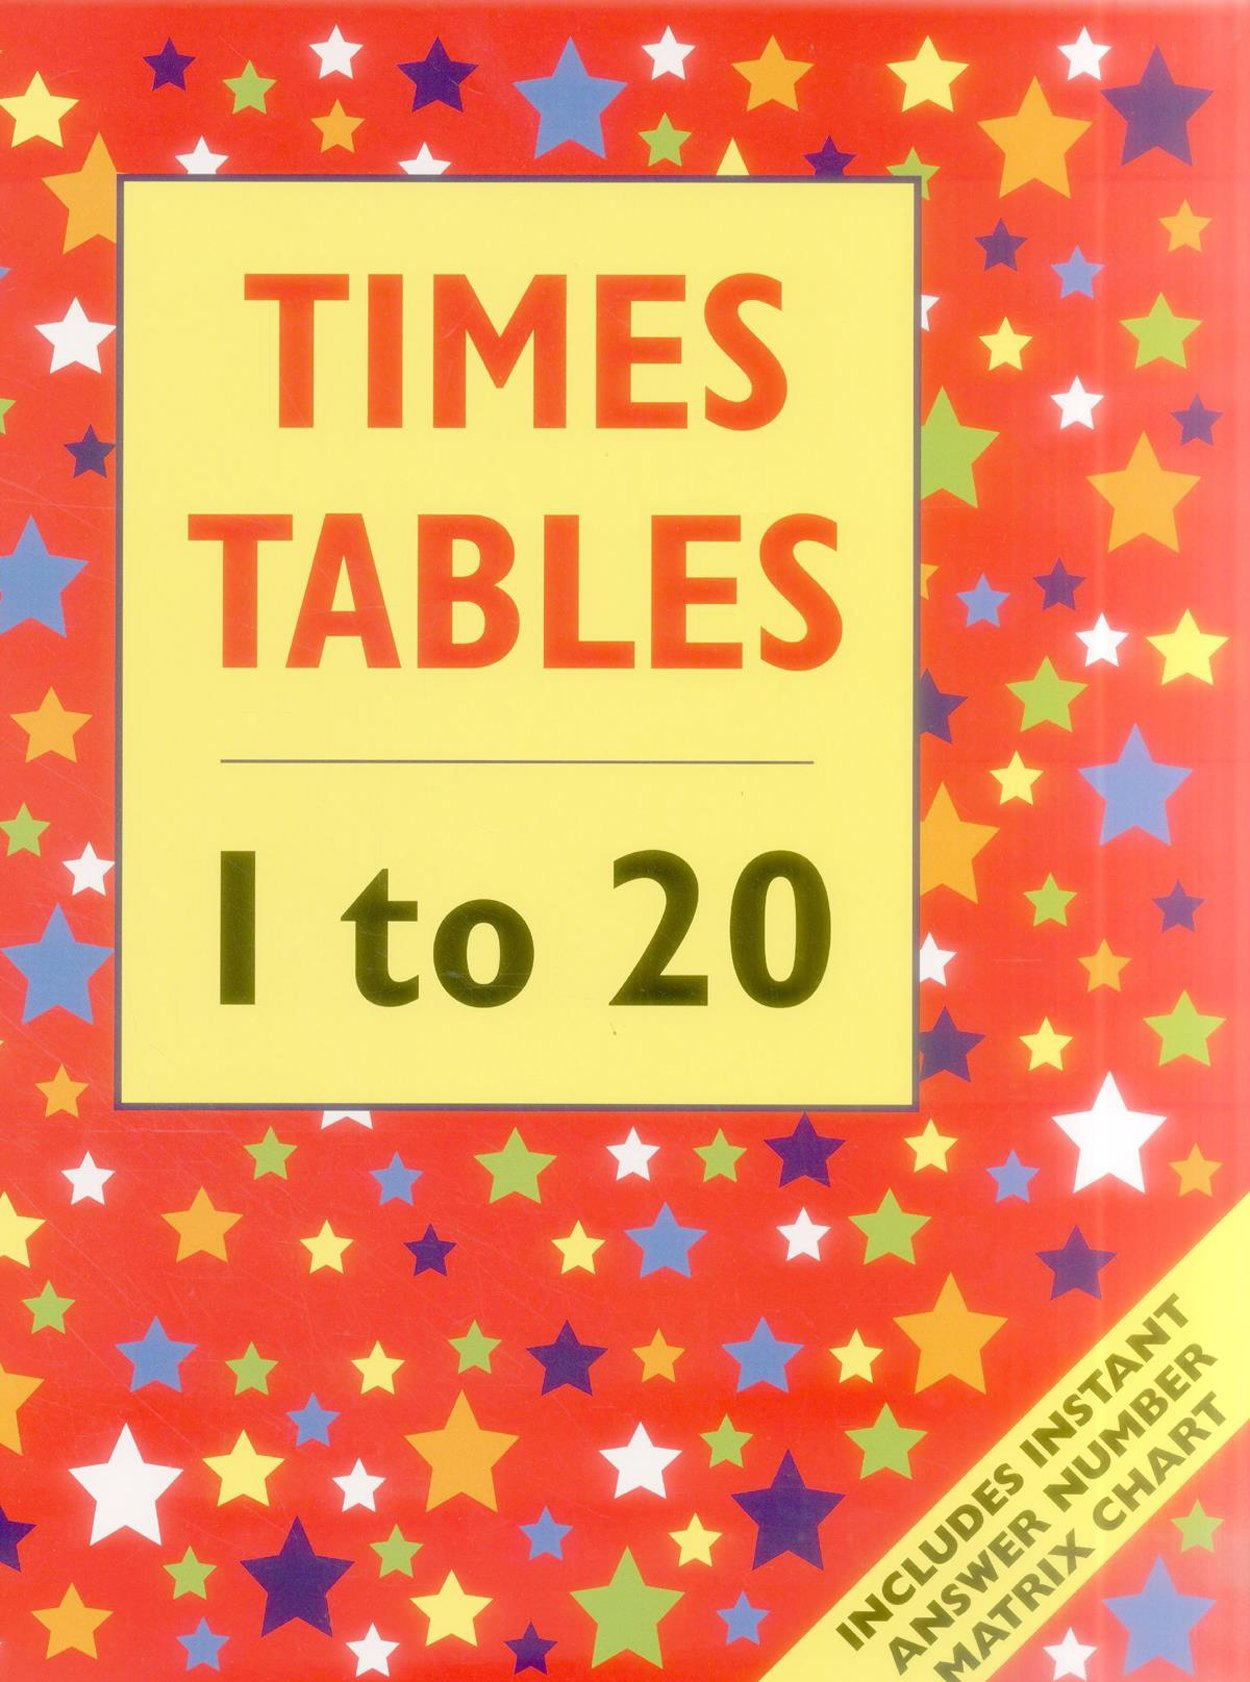 Worksheets 1to 20 Tables Charts times table 1 to 20 floor book includes instant answer number matrix chart armadillo publishing 9781861474735 amazon com boo